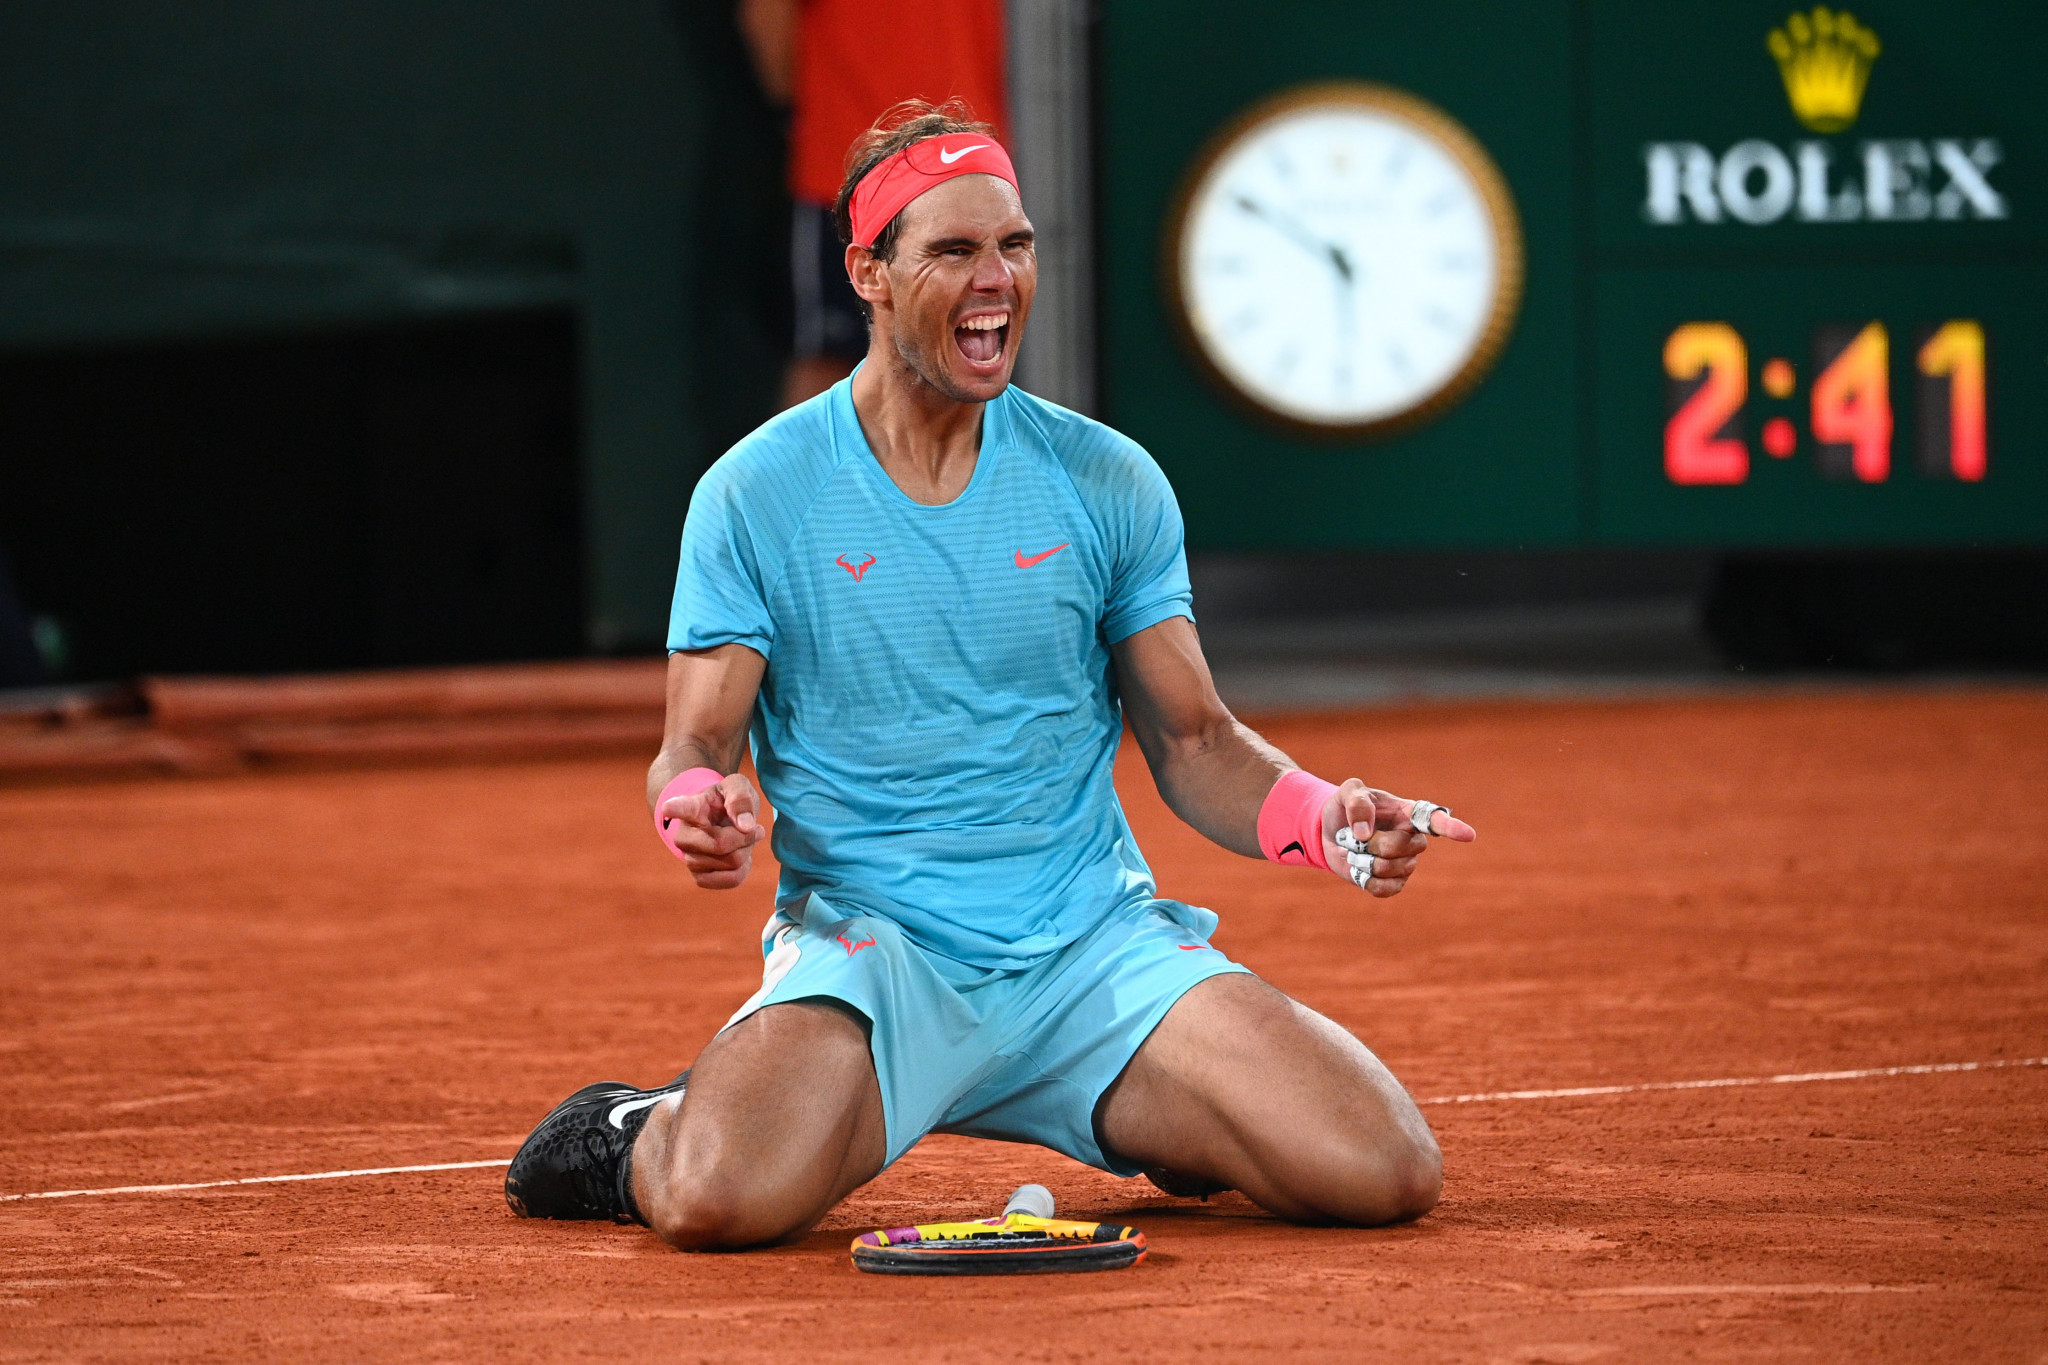 Dominant Nadal seals 13th French Open title with thrashing of Djokovic